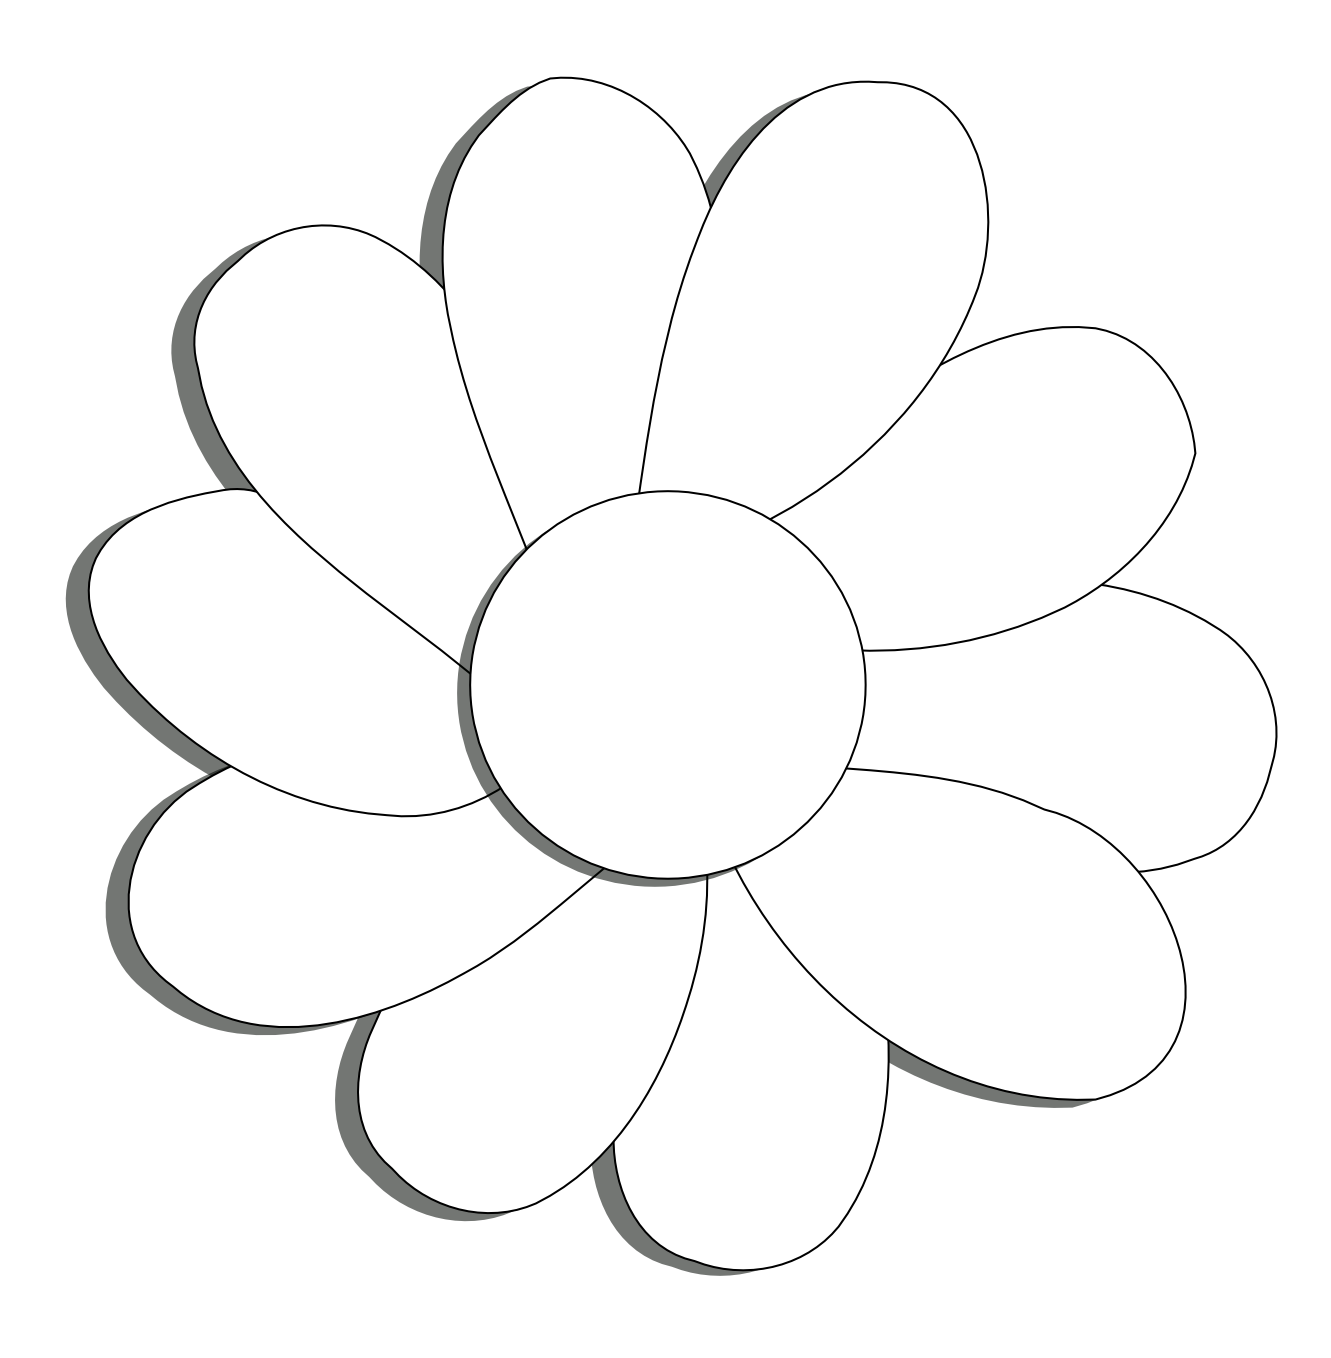 Daisy flower clipart png black and white Daisey flower outline clipart - ClipartFest png black and white